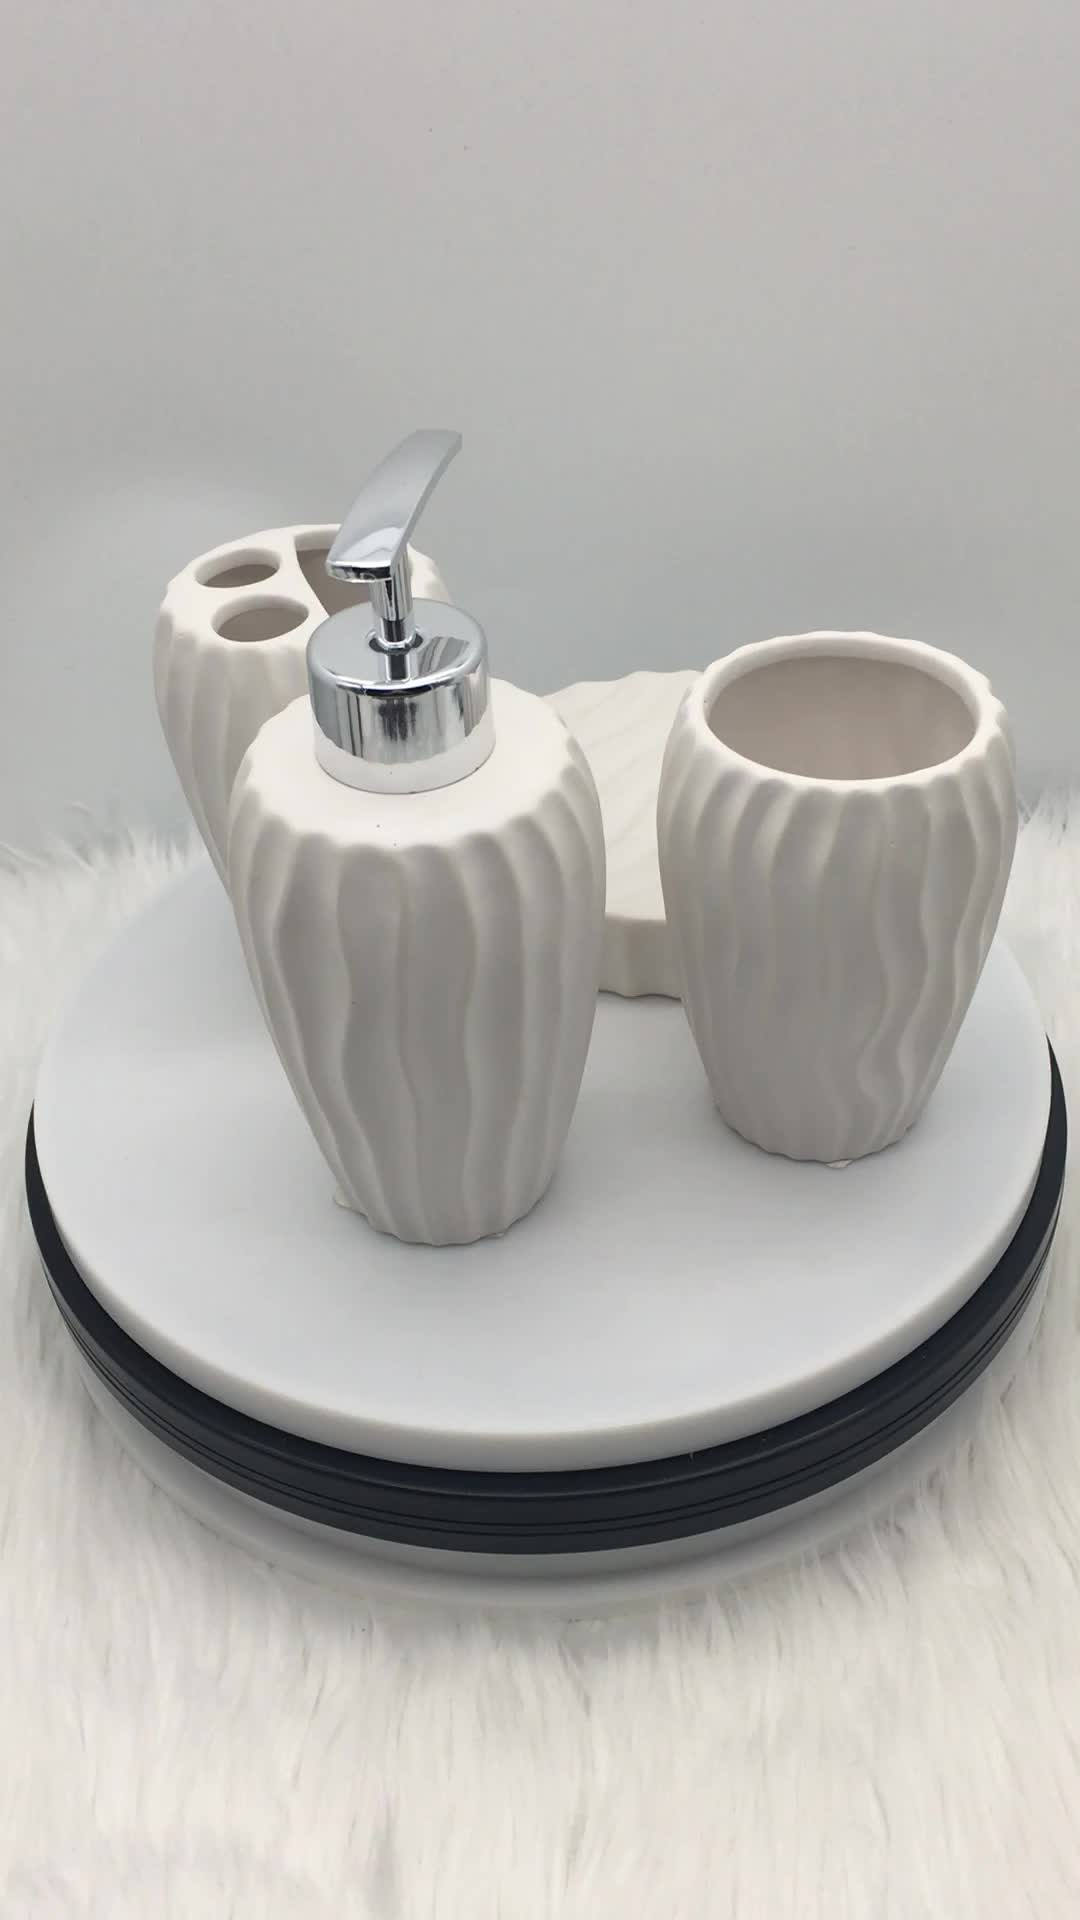 Cheap Price Eco Friendly Porcelain Bathroom Set Ceramic